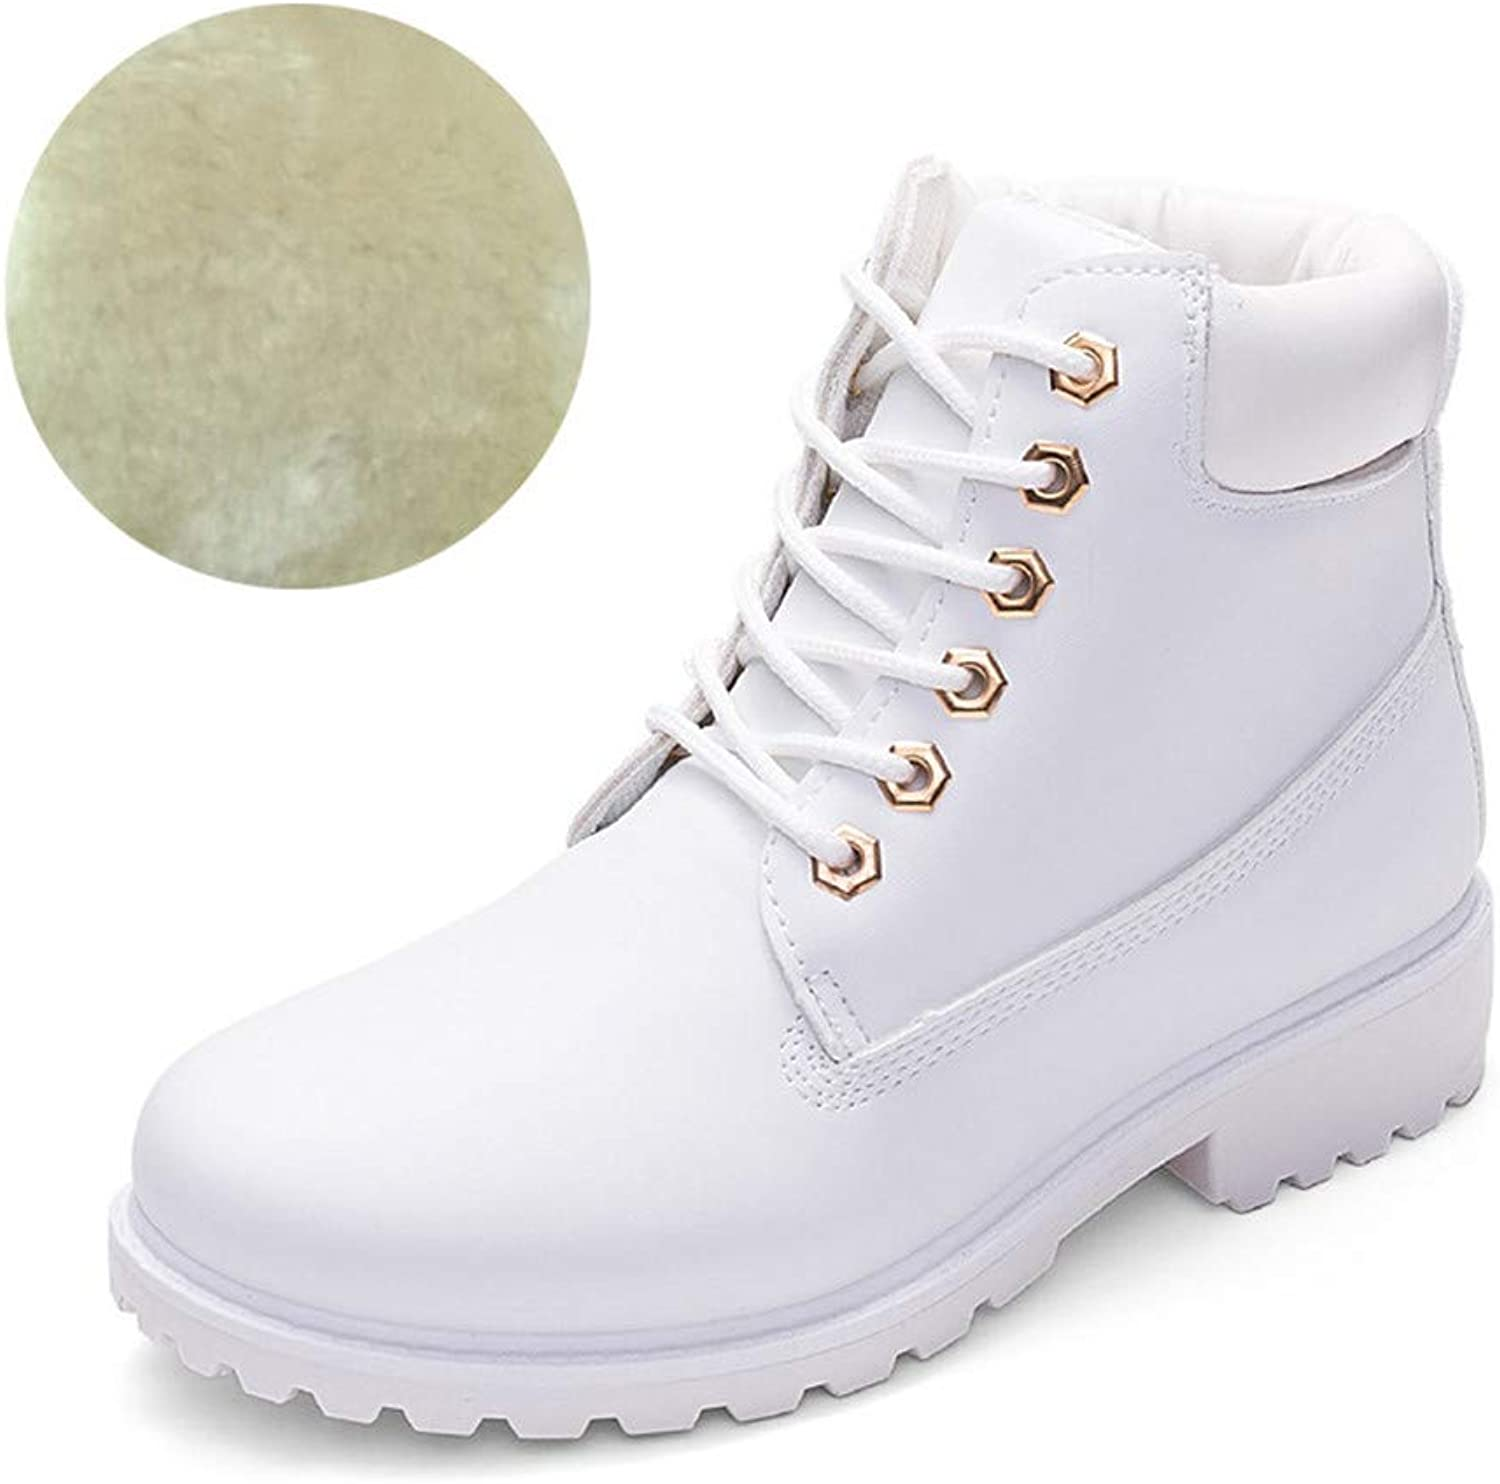 Plus Velours Martin Boots Female Short Boots Outdoor Hiking Boots Single Boots Female Flat Large Size Autumn and Winter Female PU Leather Boots Pink